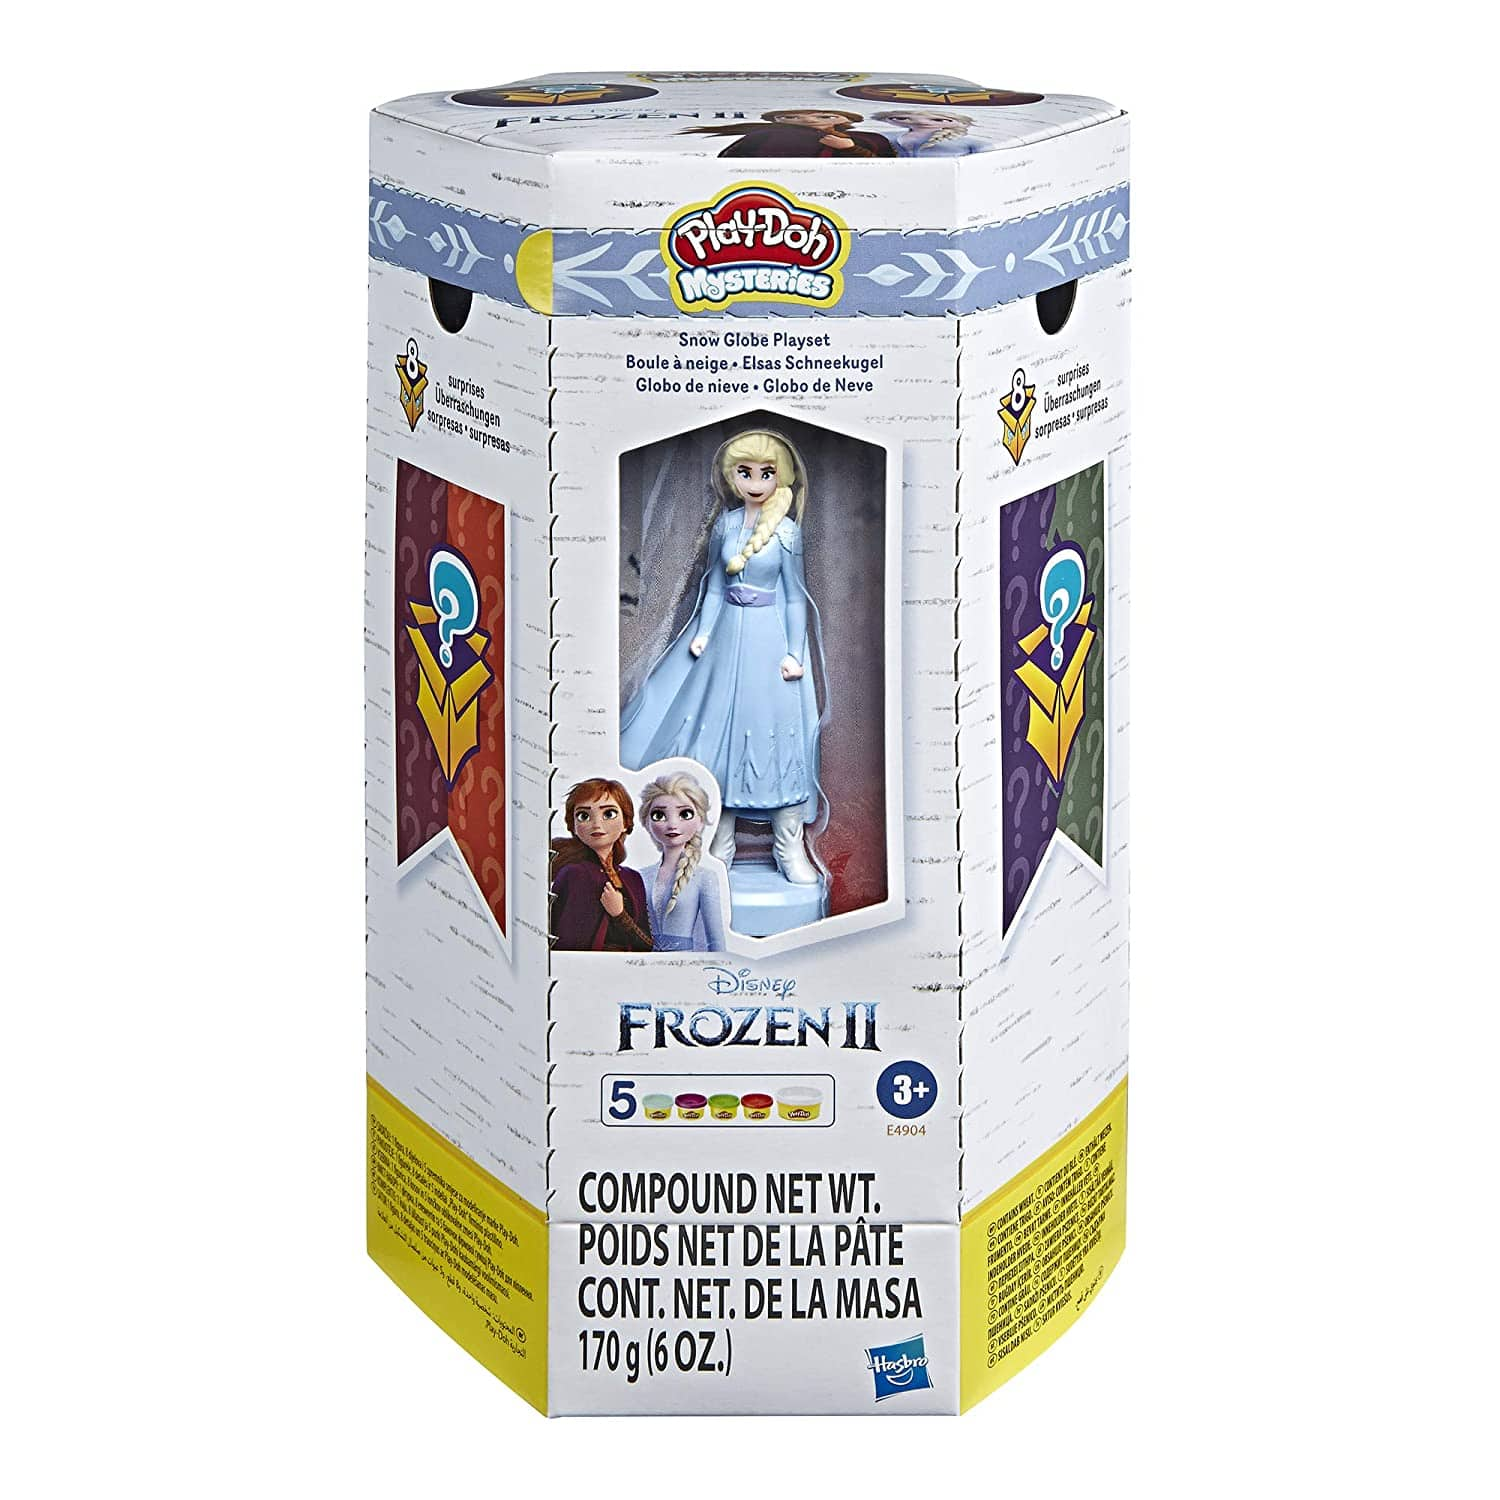 Play-Doh Mysteries Disney Frozen 2 Snow Globe Playset (5 Cans) $8.88 + Free Shipping w/ Prime or $25+